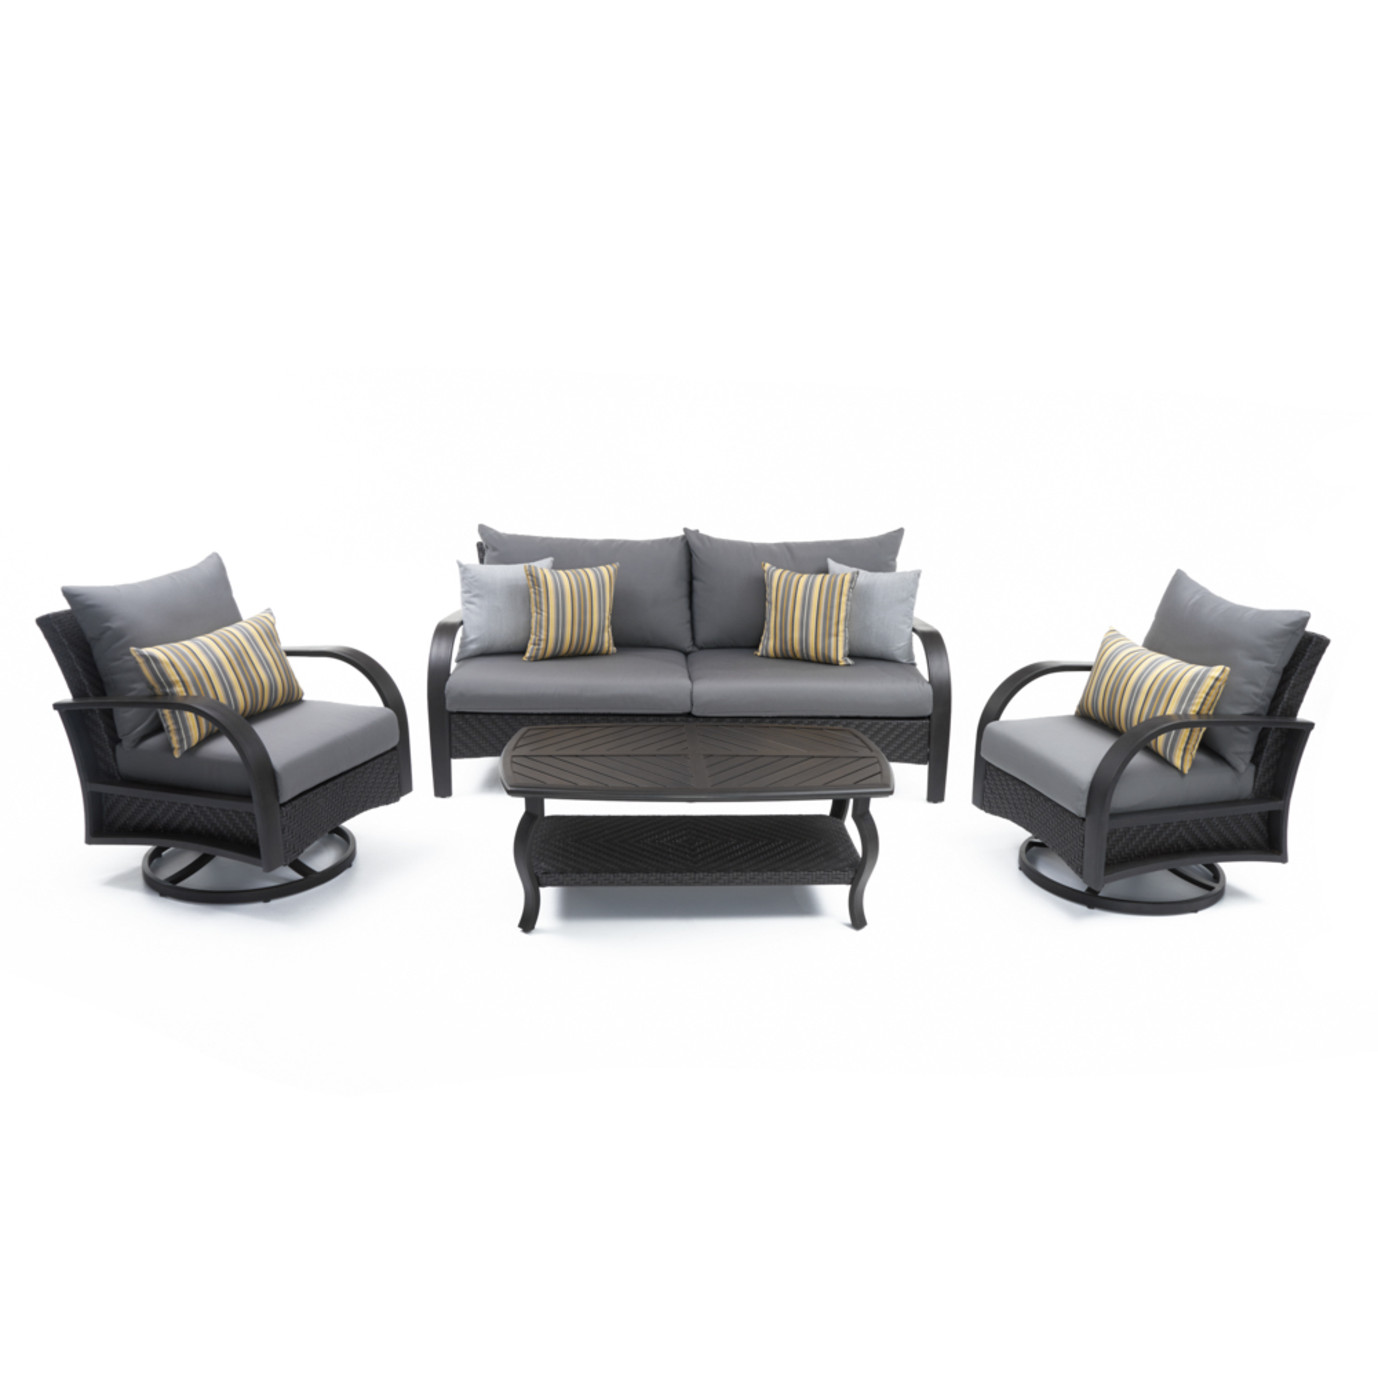 Barcelo™ 4pc Motion Club & Sofa Set - Charcoal Gray